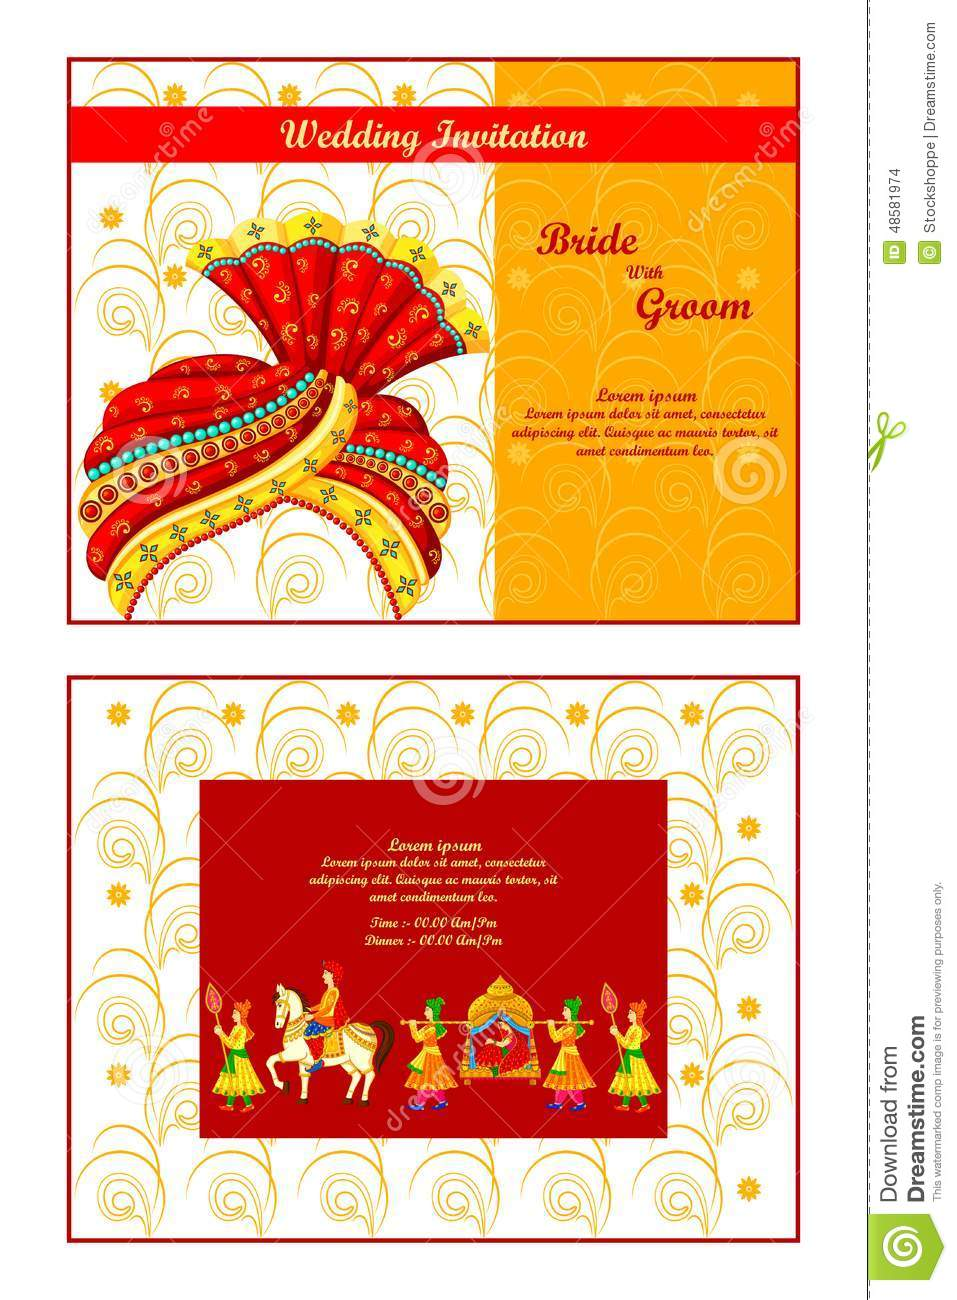 Indian Wedding Invitation Card Stock Vector - Illustration of card ...